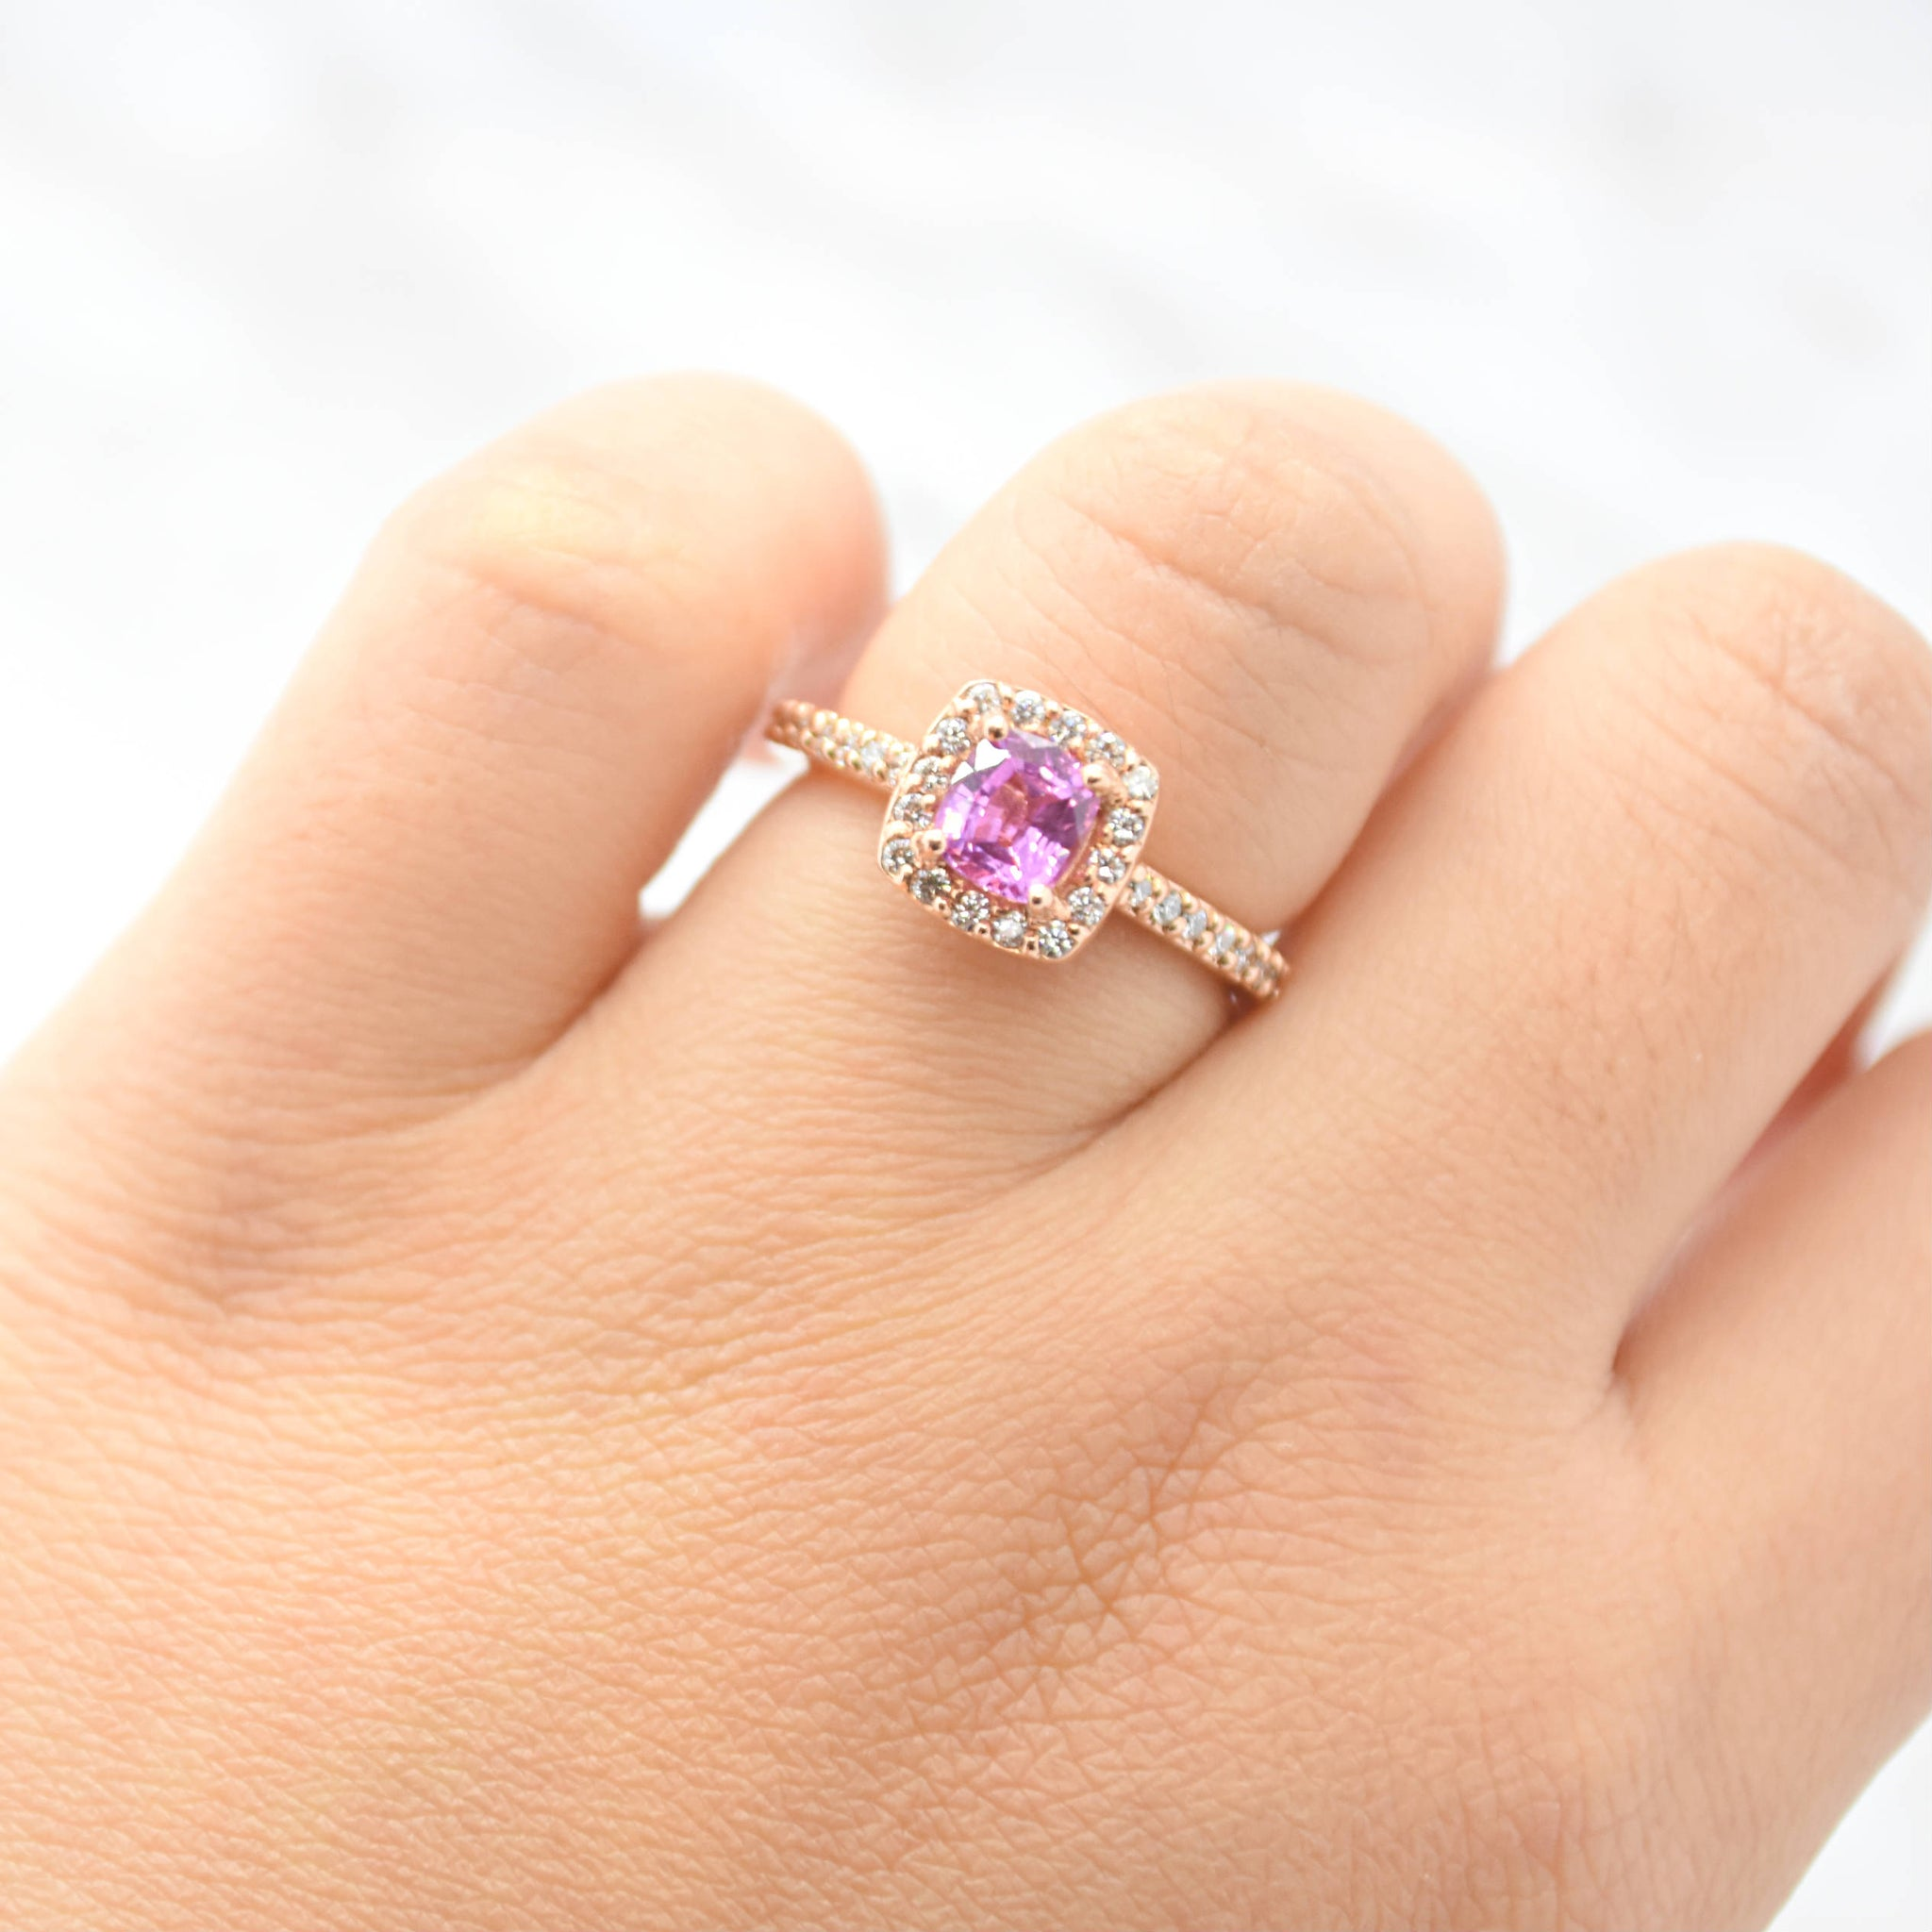 cubic engagement silver products carat stone anniversary rings zirconia cut wedding princess cz ring sparkles valentine nadine faux statement beloved diamond cocktail pink